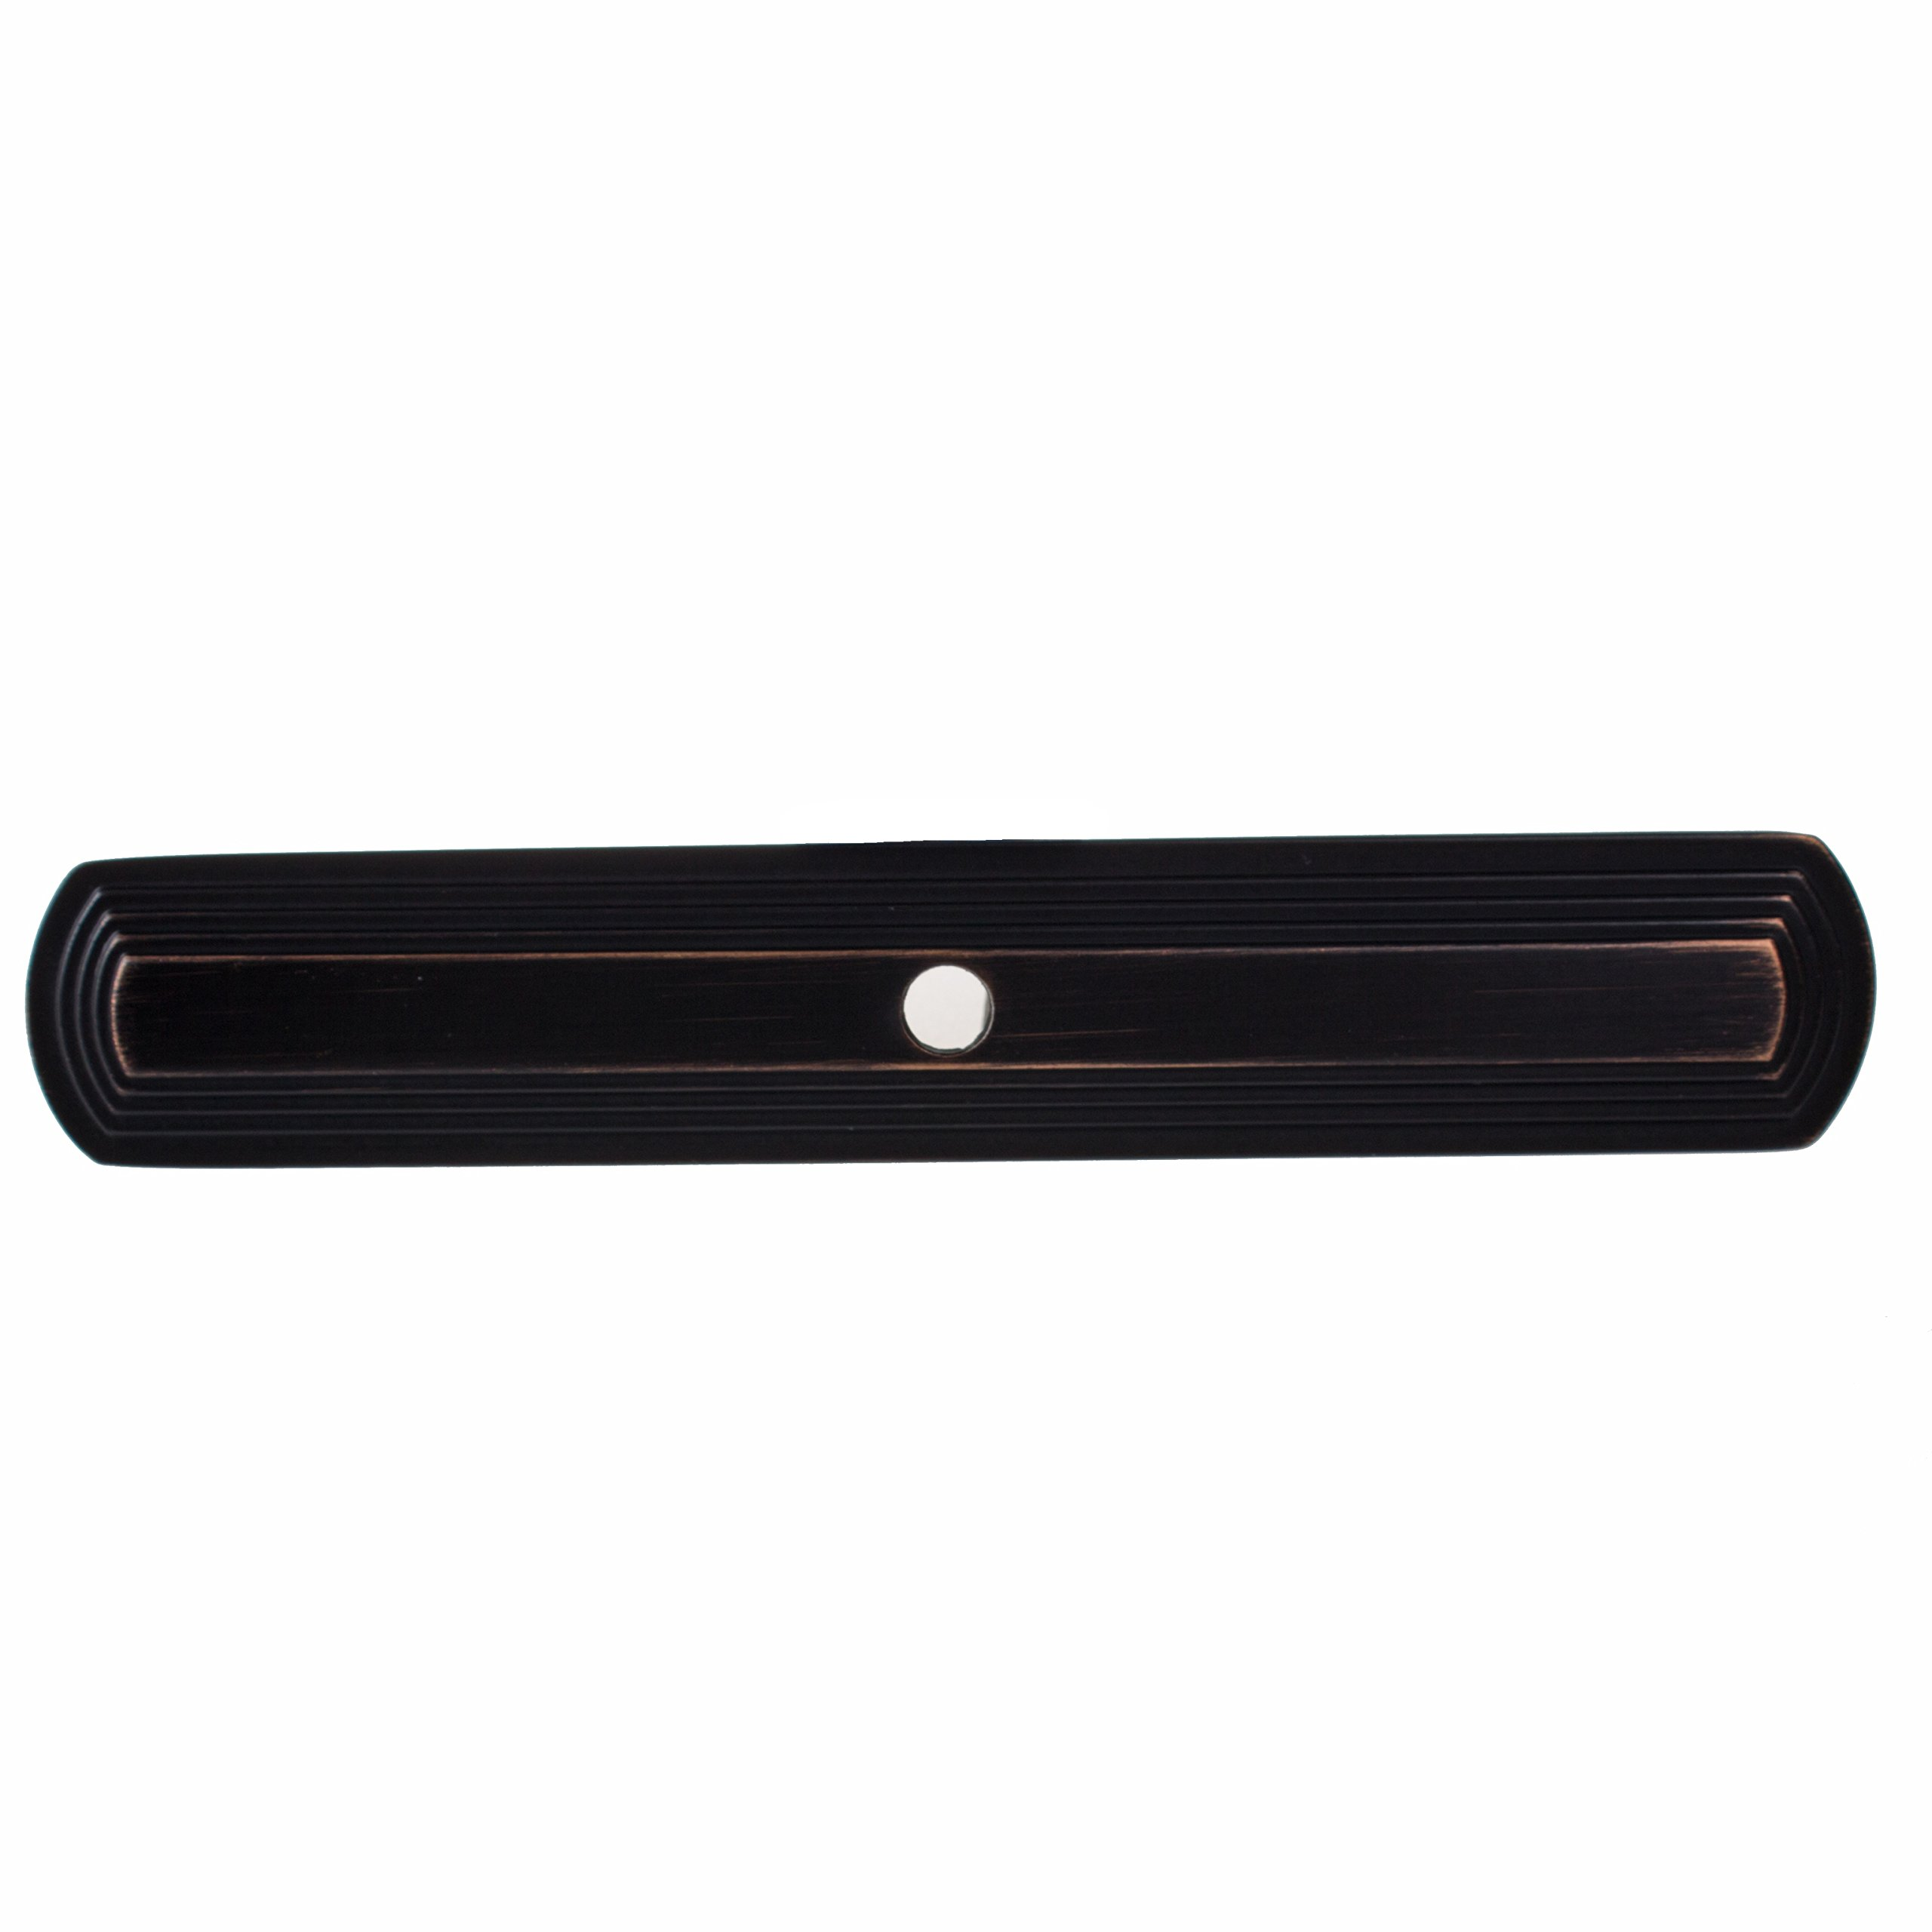 GlideRite Hardware 1079-ORB-10 6 inch Long Narrow Rounded Rectangle Oil Rubbed Bronze Cabinet Back Plate 10 Pack